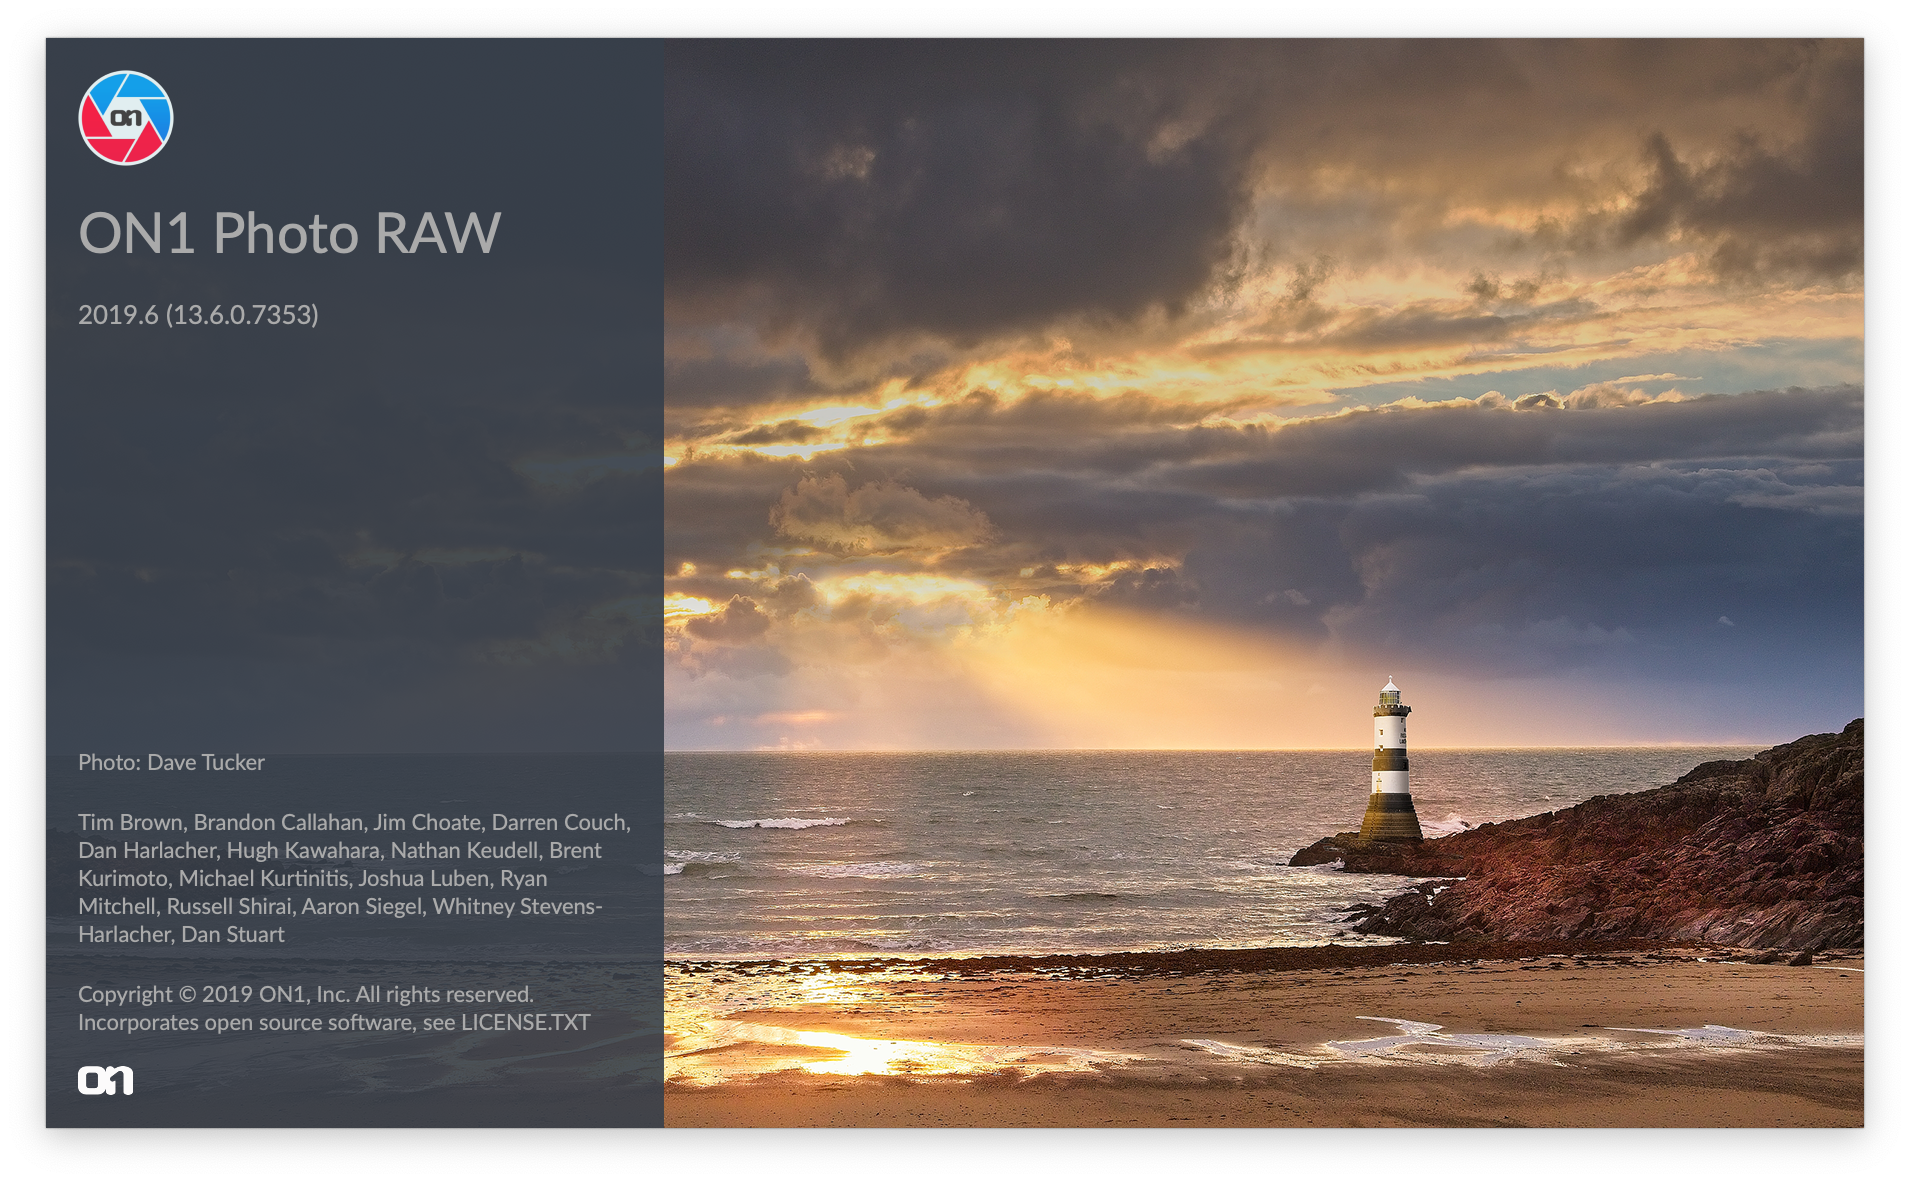 ON1 Photo RAW 2019 6 Release Notes and Installation